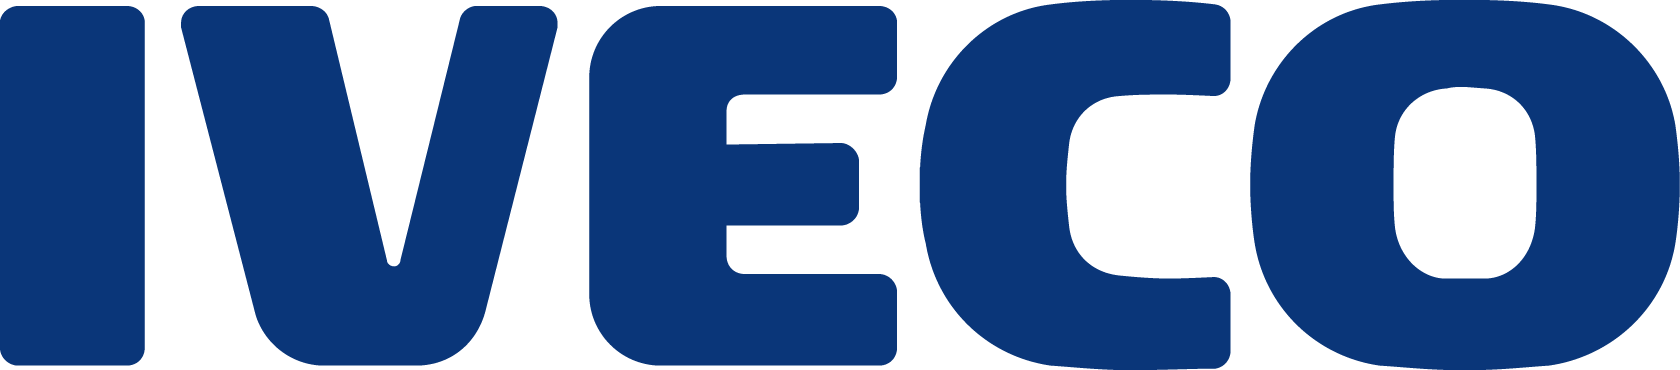 iveco-logo.png